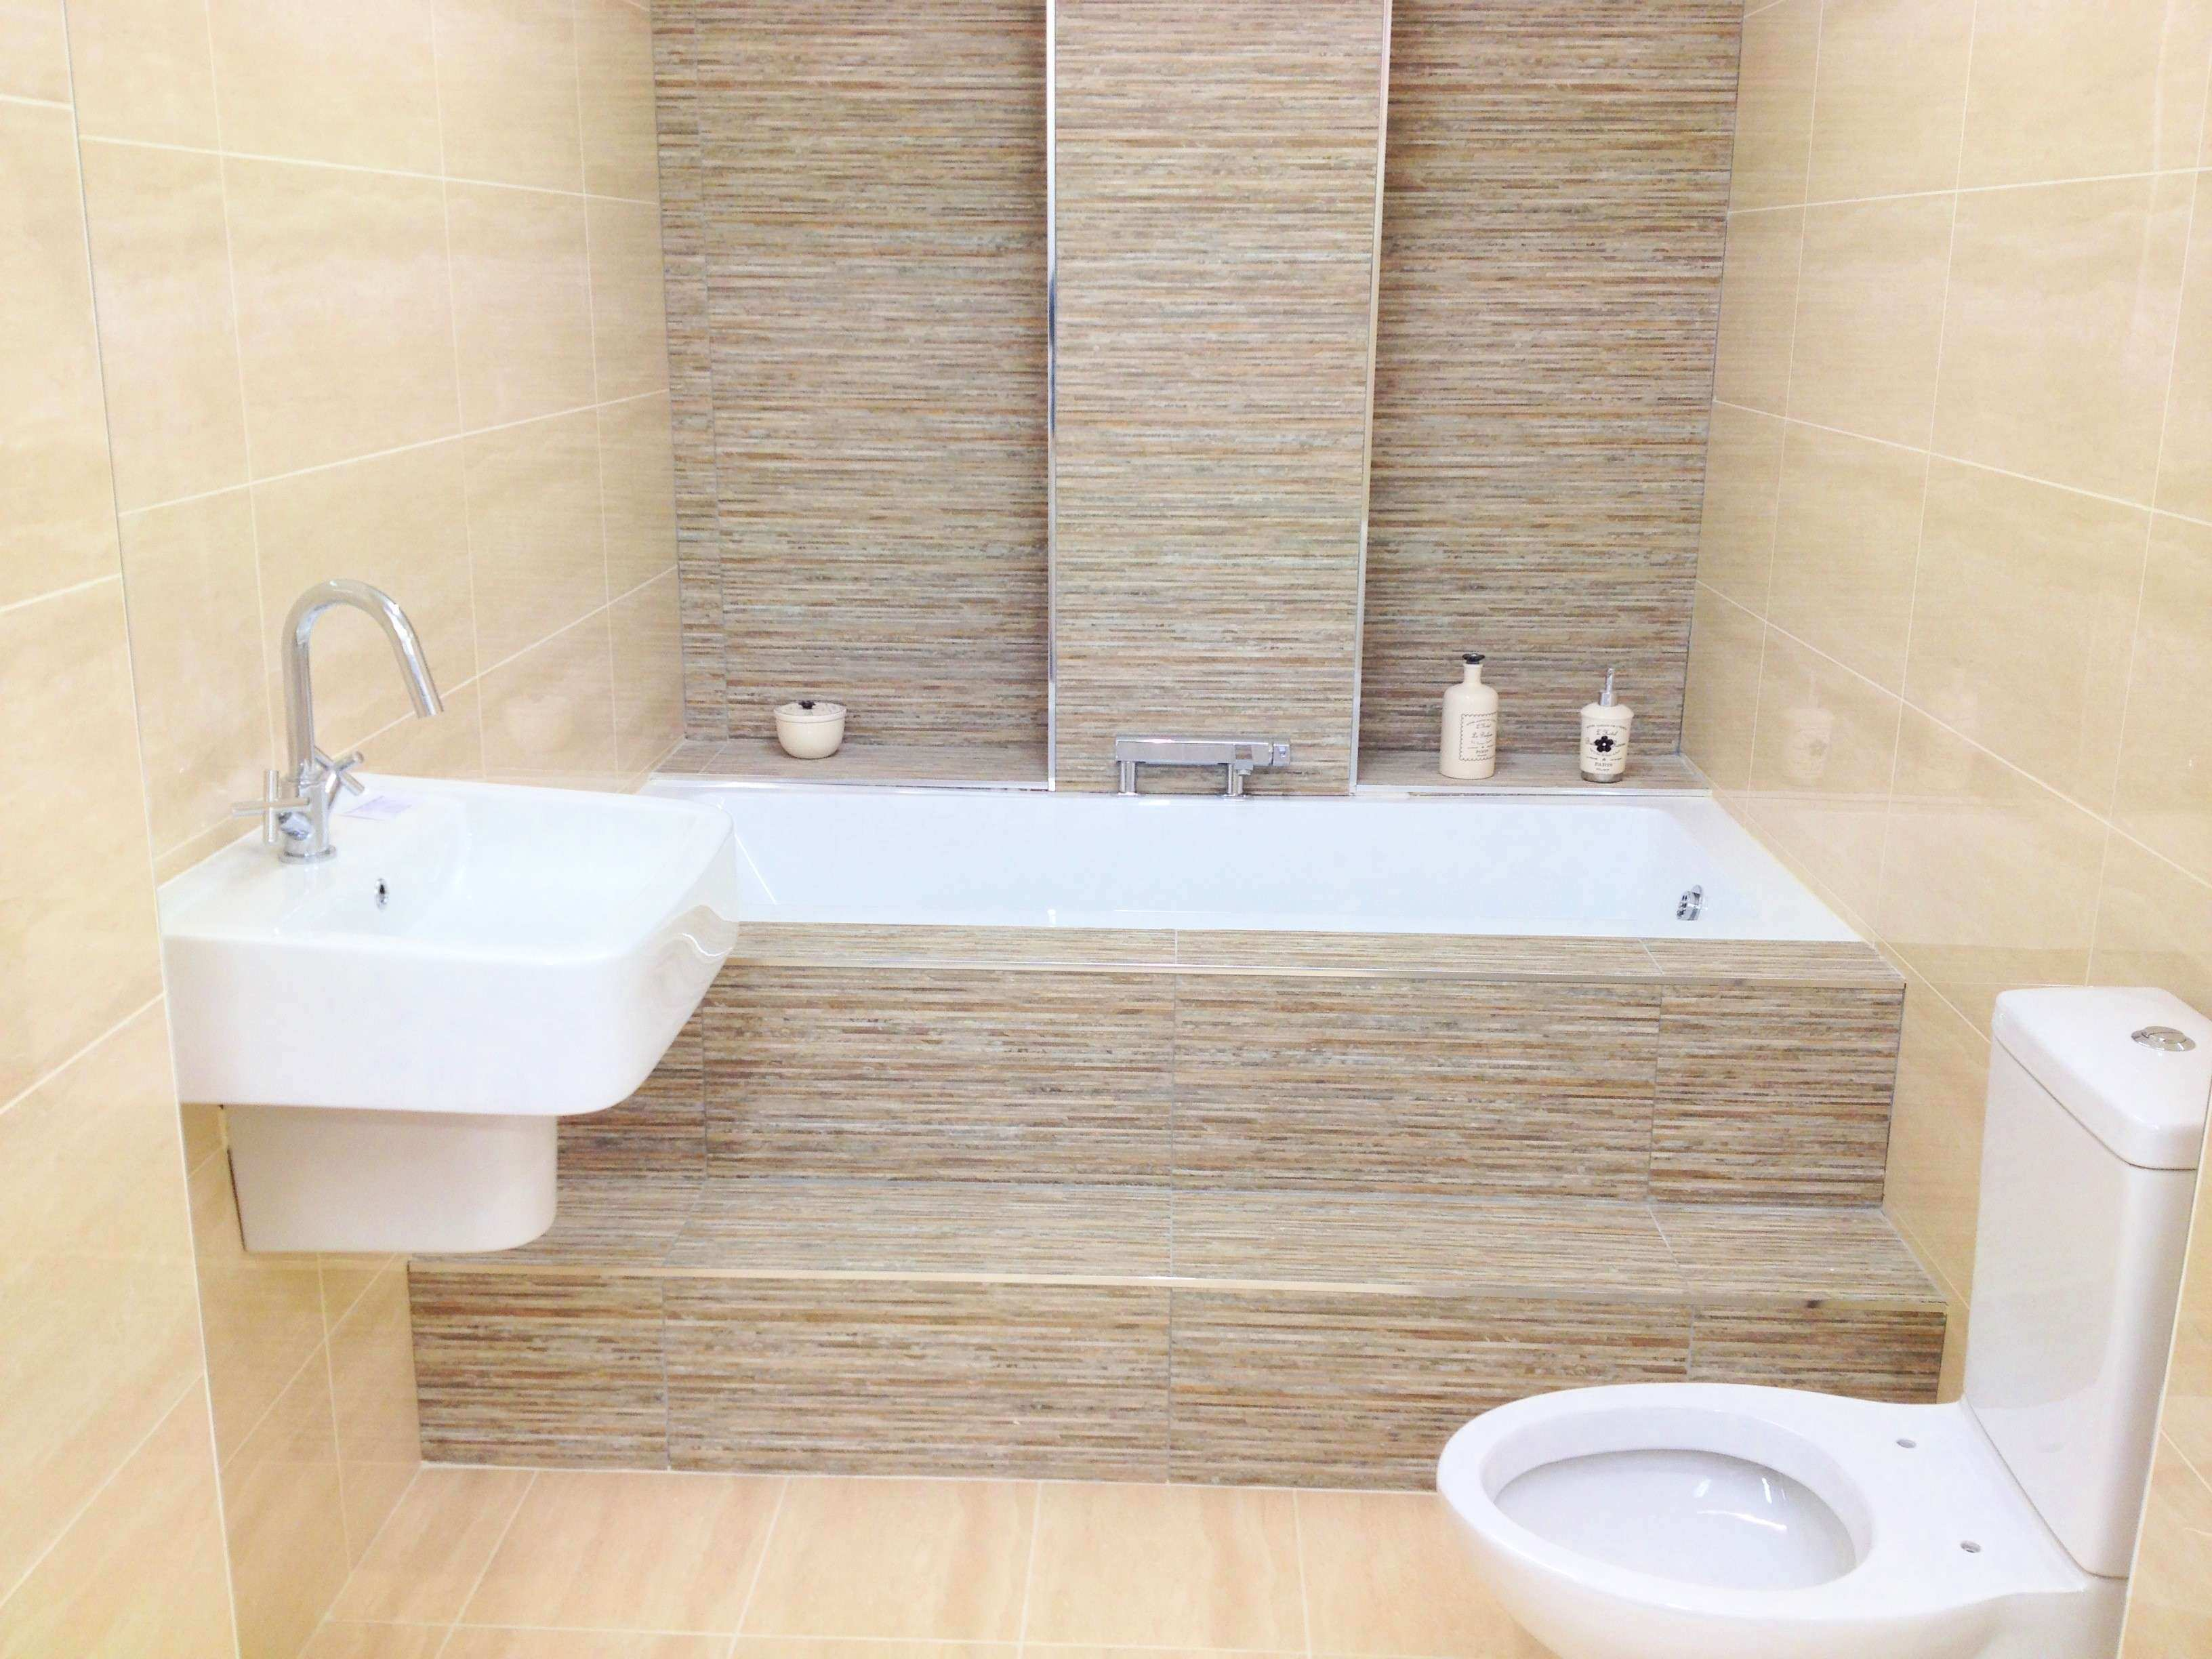 Wall Pictures for Bathroom Fresh Can You Put Floor Tiles the Wall